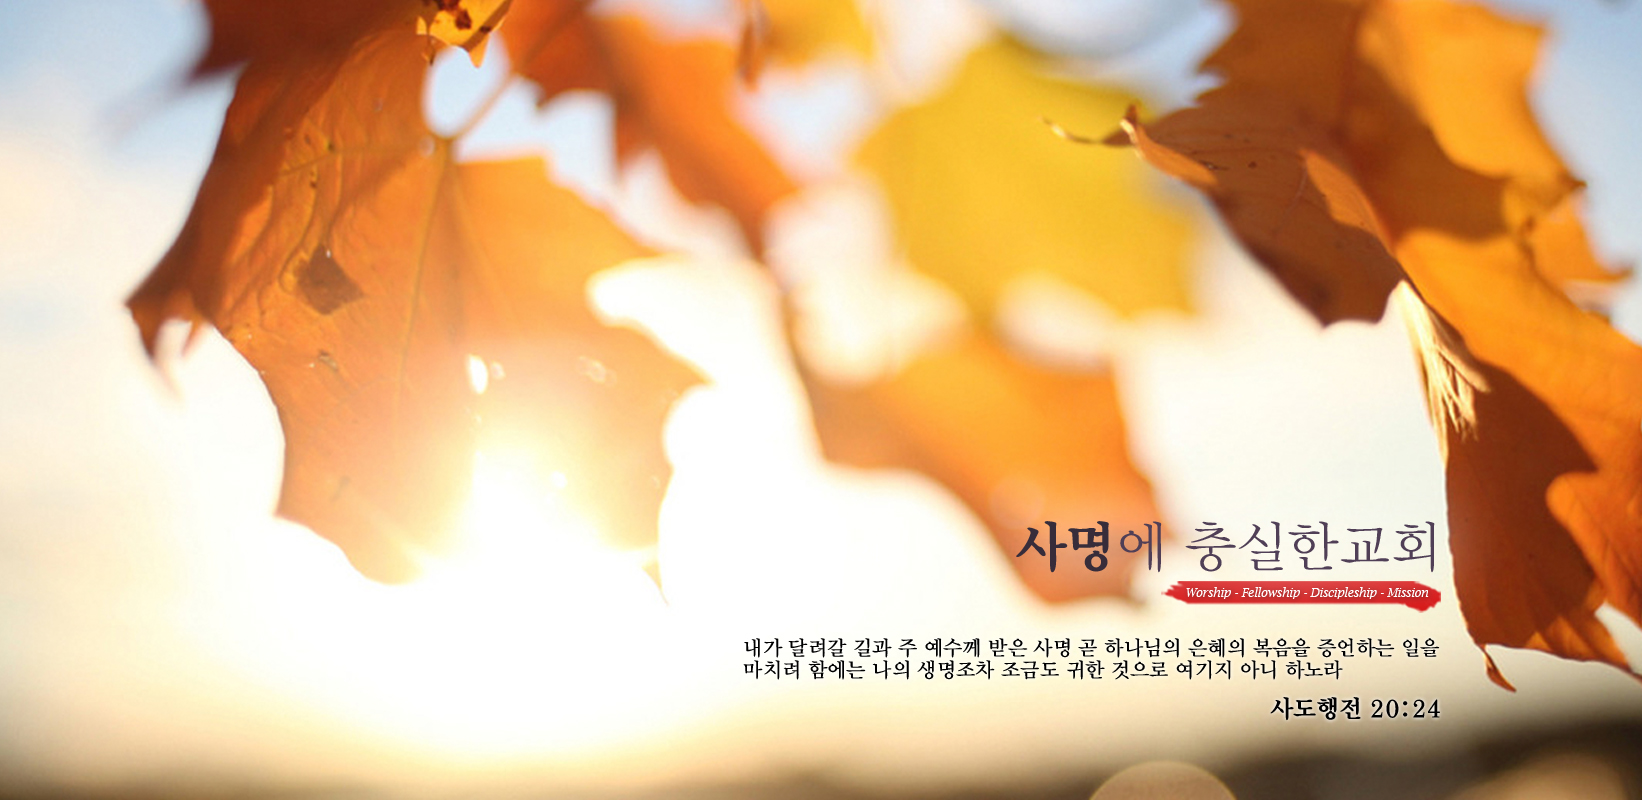 homepage-banner11